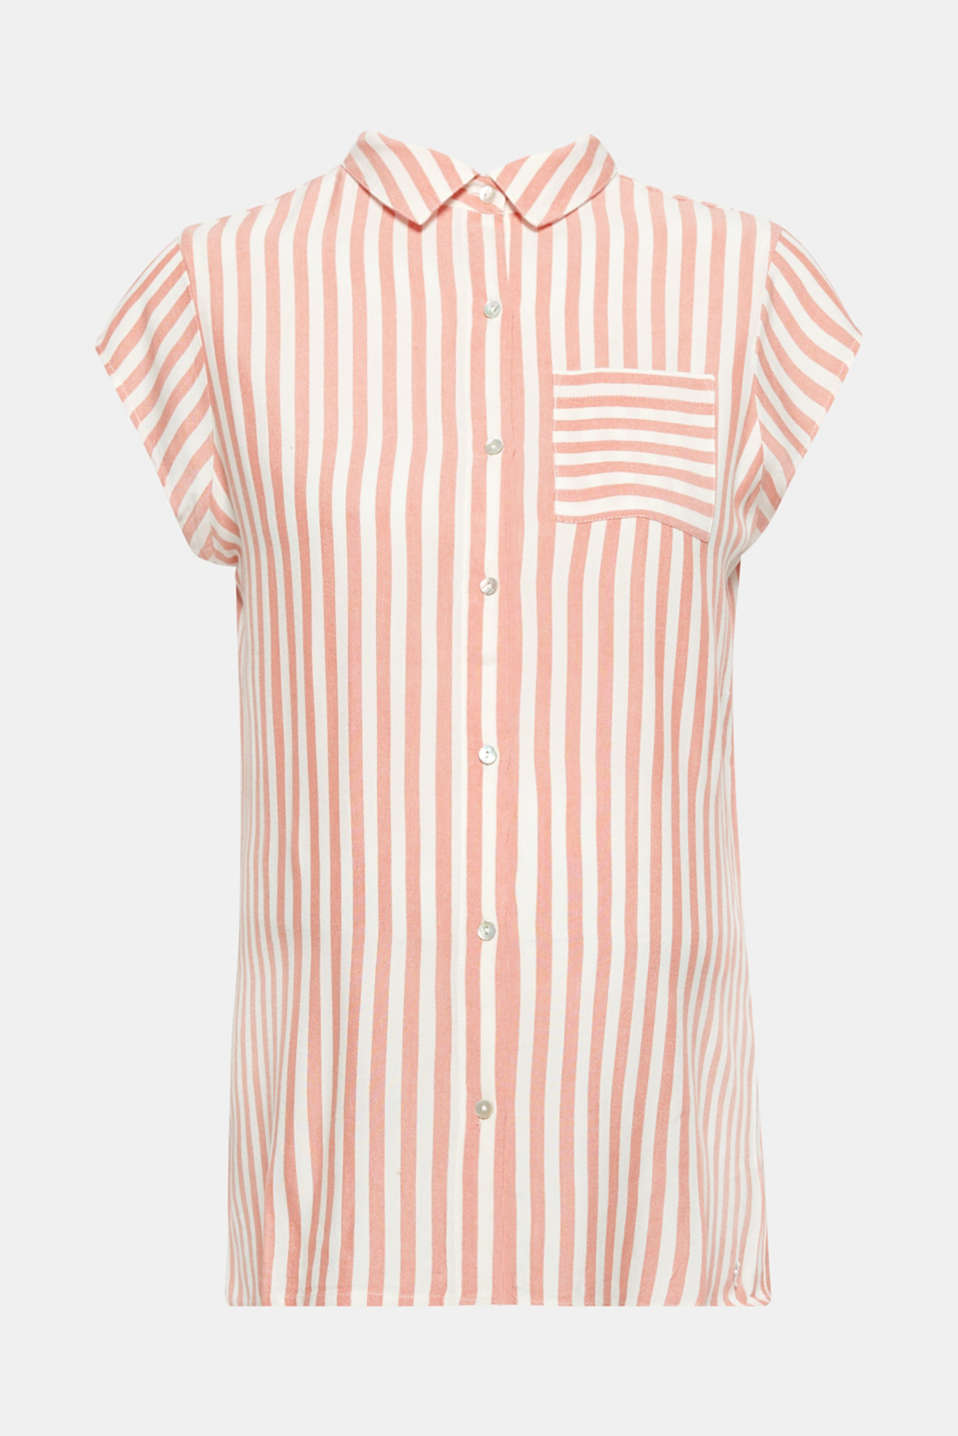 This lightweight shirt blouse with a fashionable striped pattern and breast pocket is on-trend during pregnancy and, thanks to the button placket, practical for breastfeeding!